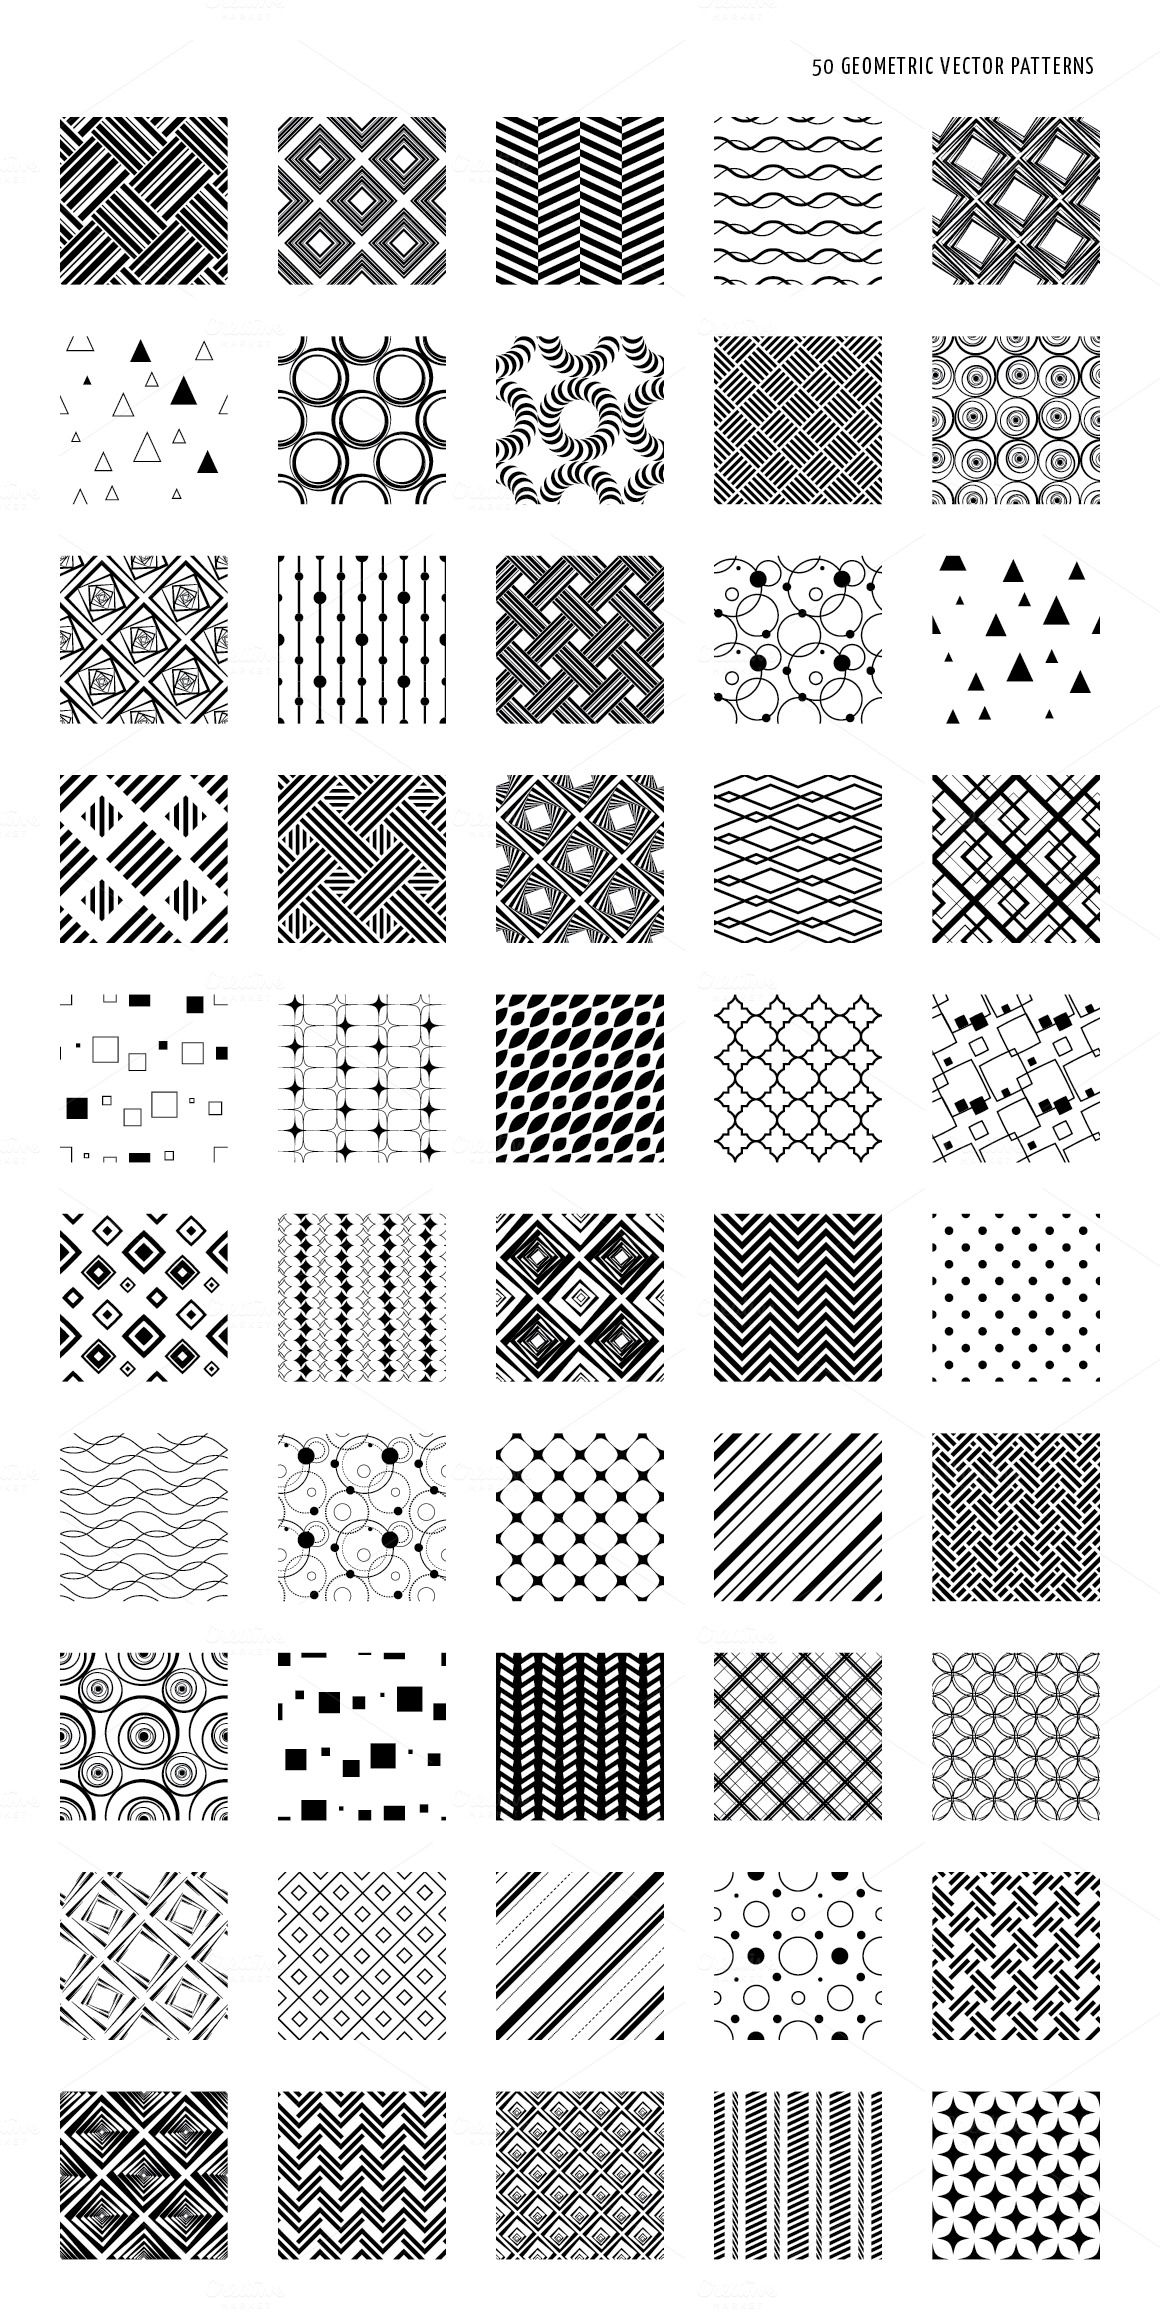 Abstract geometric vector patterns by design by nube on